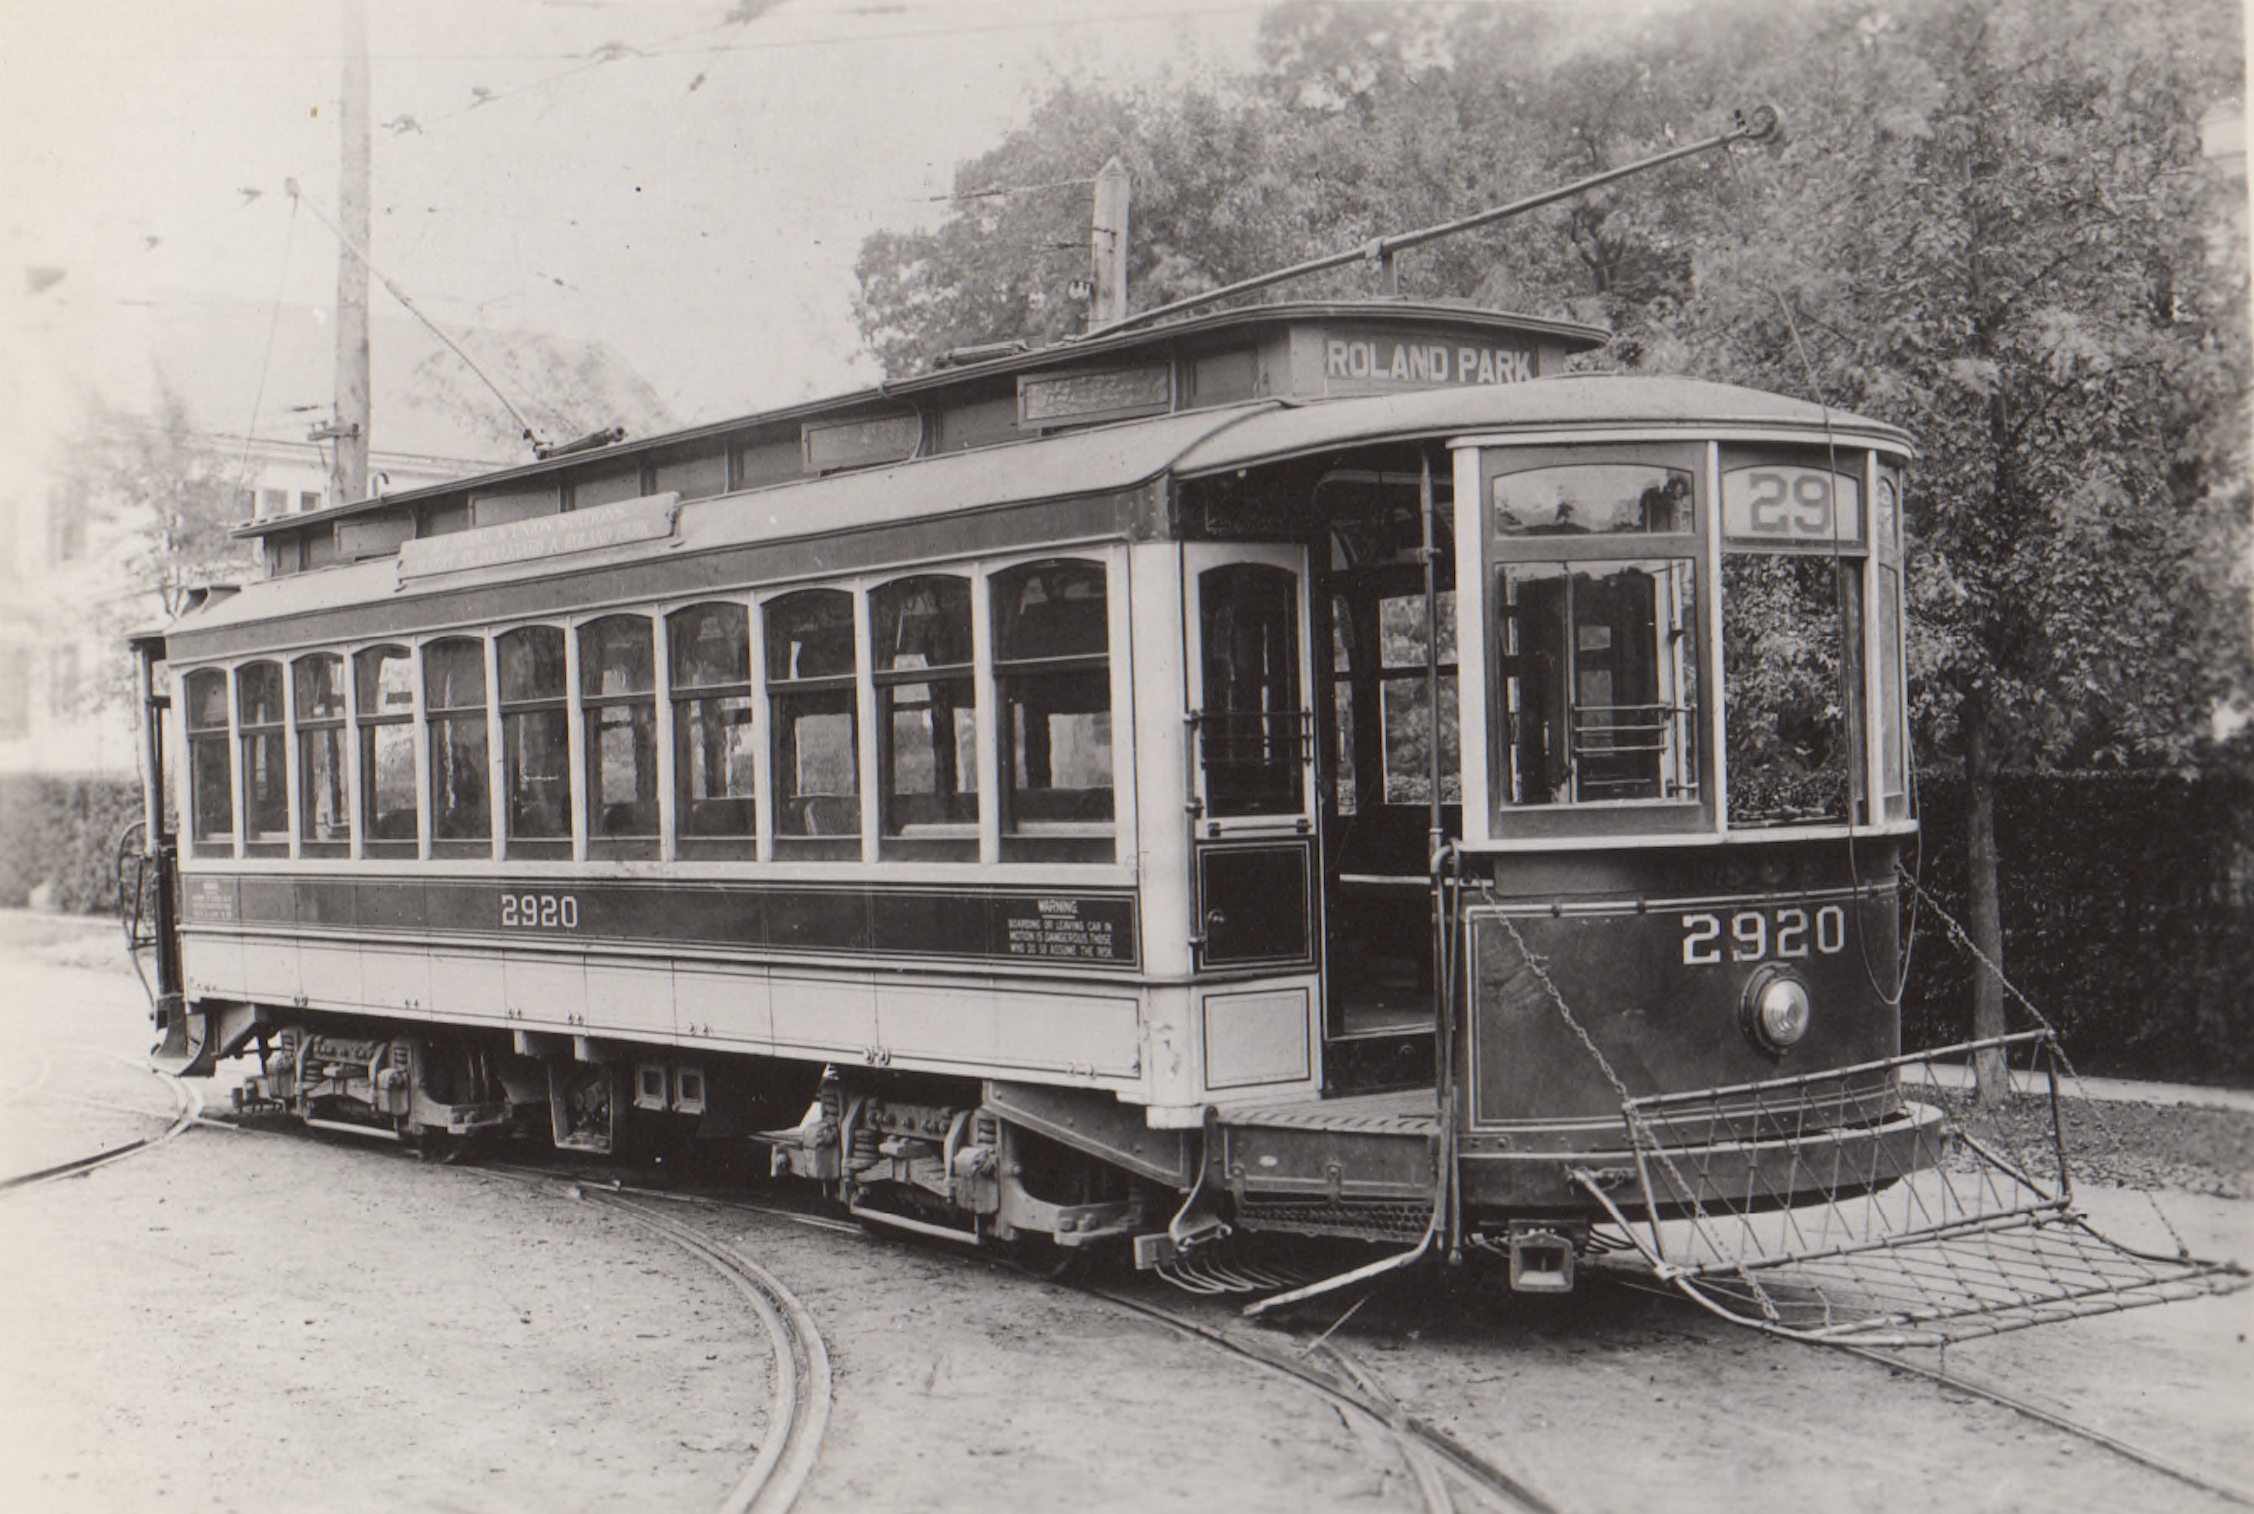 Image Credit: BSM Archive, the 29 line went to Overhill Waiting Station